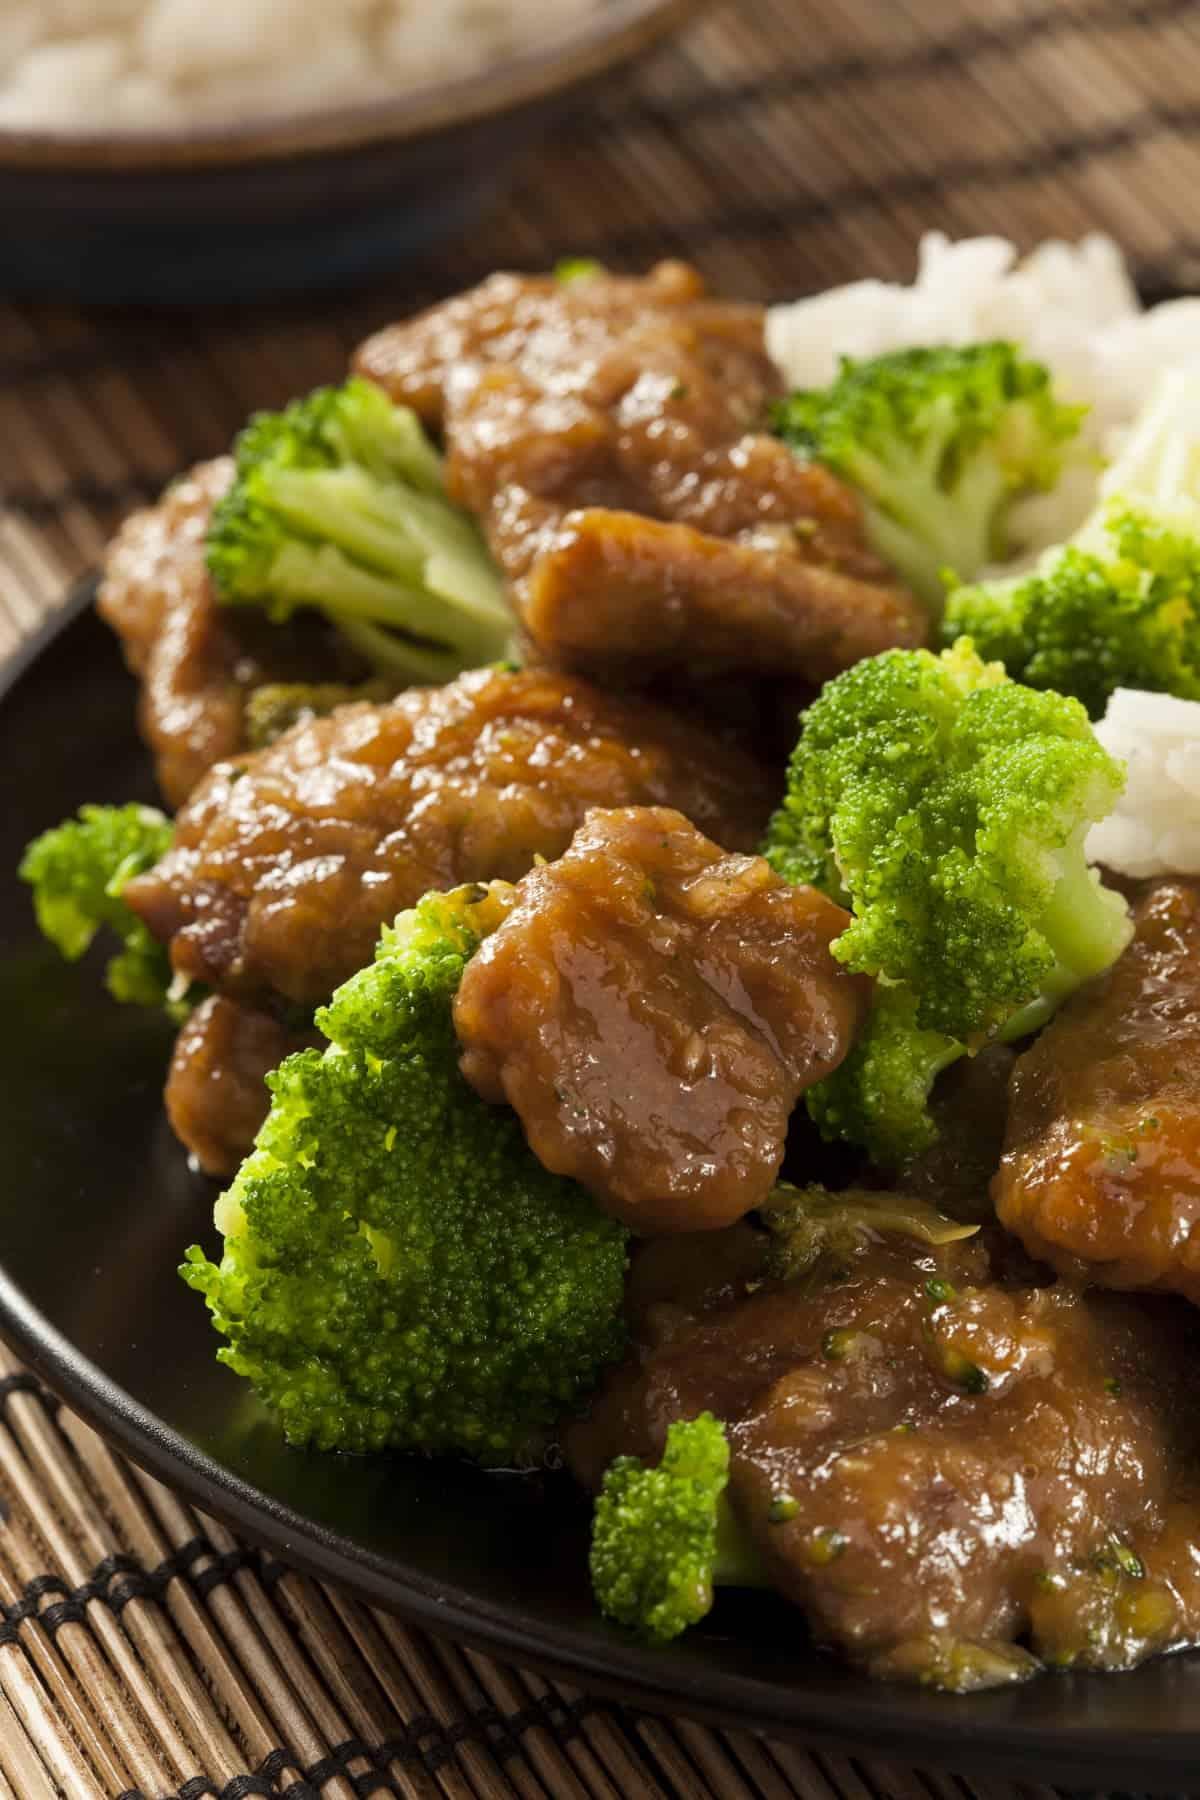 Beef with Broccoli and white rice on dark plate on bamboo mat.